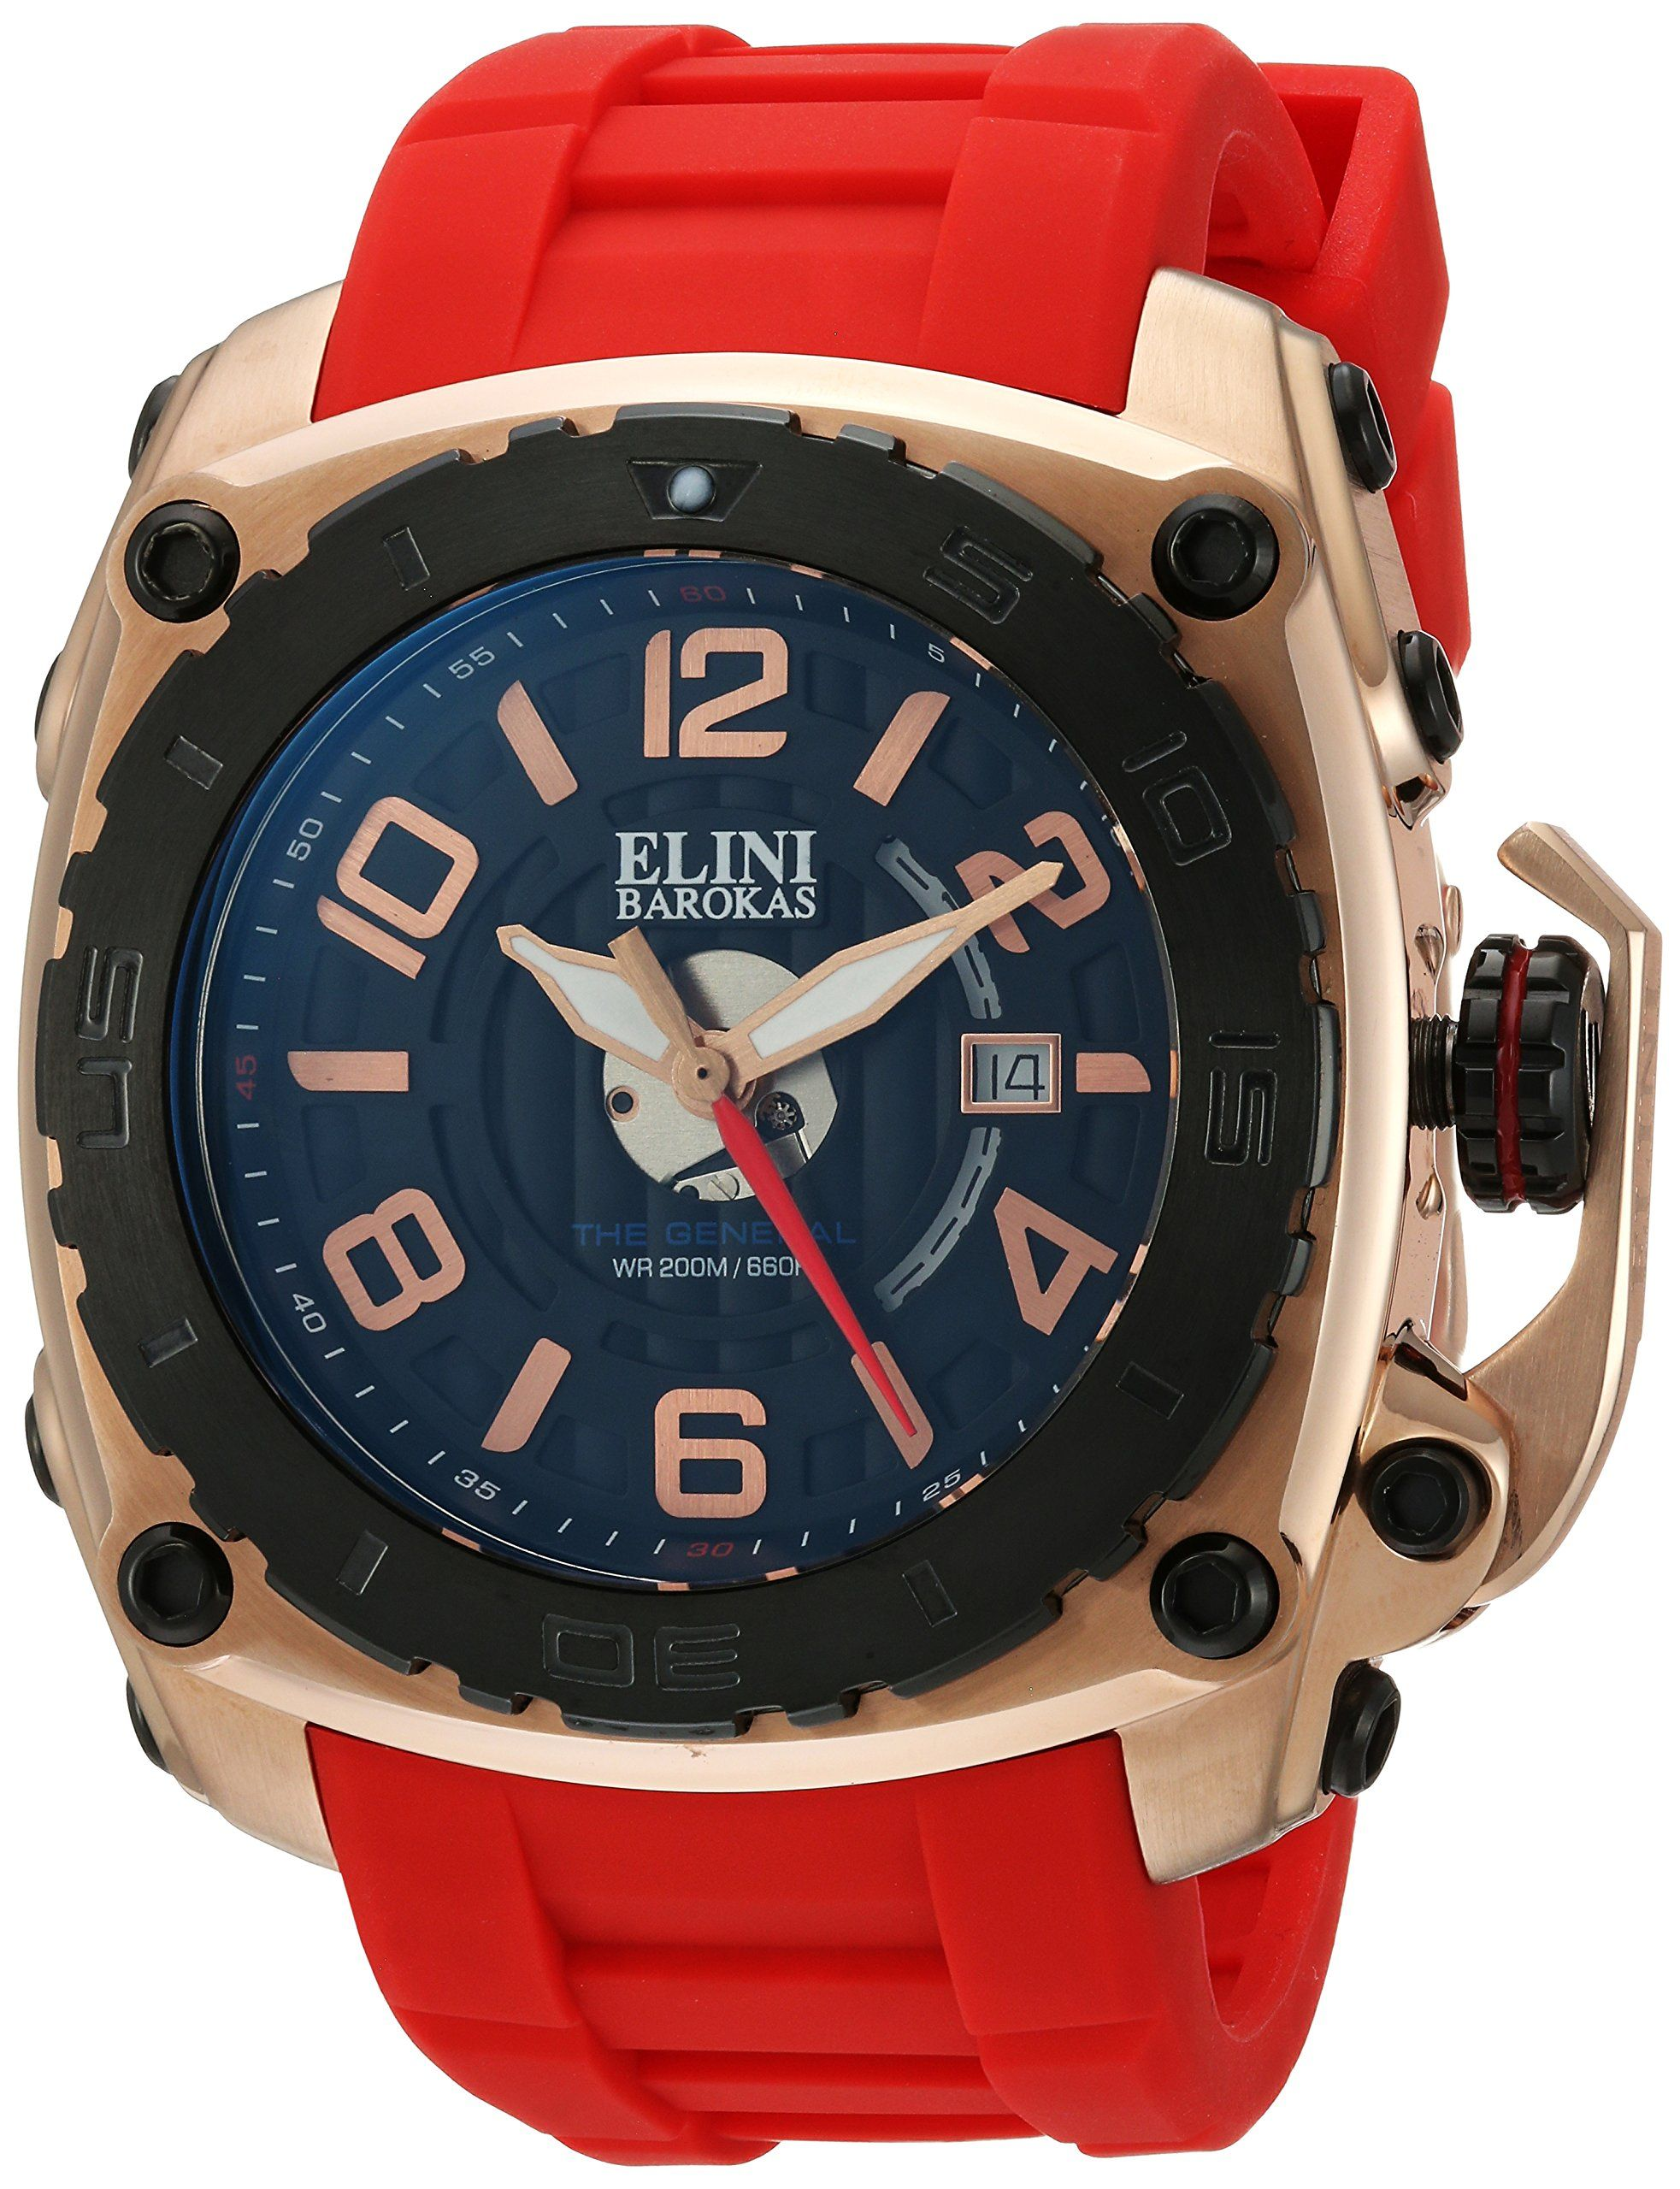 Elini Barokas Men's 'The General' Swiss Quartz Stainless Steel and Silicone Casual Watch, Color:Red (Model: 20009-RG-01-BB-RDS). Date Window at 3:00; Unidirectional Black Ion-Plated Stainless Steel Bezel; Black Ion-Plated Screw-Down Crown with Security Clasp. Black Dial with Rose Gold Tone, Red and White Hands and Rose Gold Tone Hour Markers and Arabic Numerals; Luminous; Sapphitek Crystal; Rose Gold Tone Ion-Plated Stainless Steel Case; Red Silicone Strap. Swiss-quartz Movement. Case...